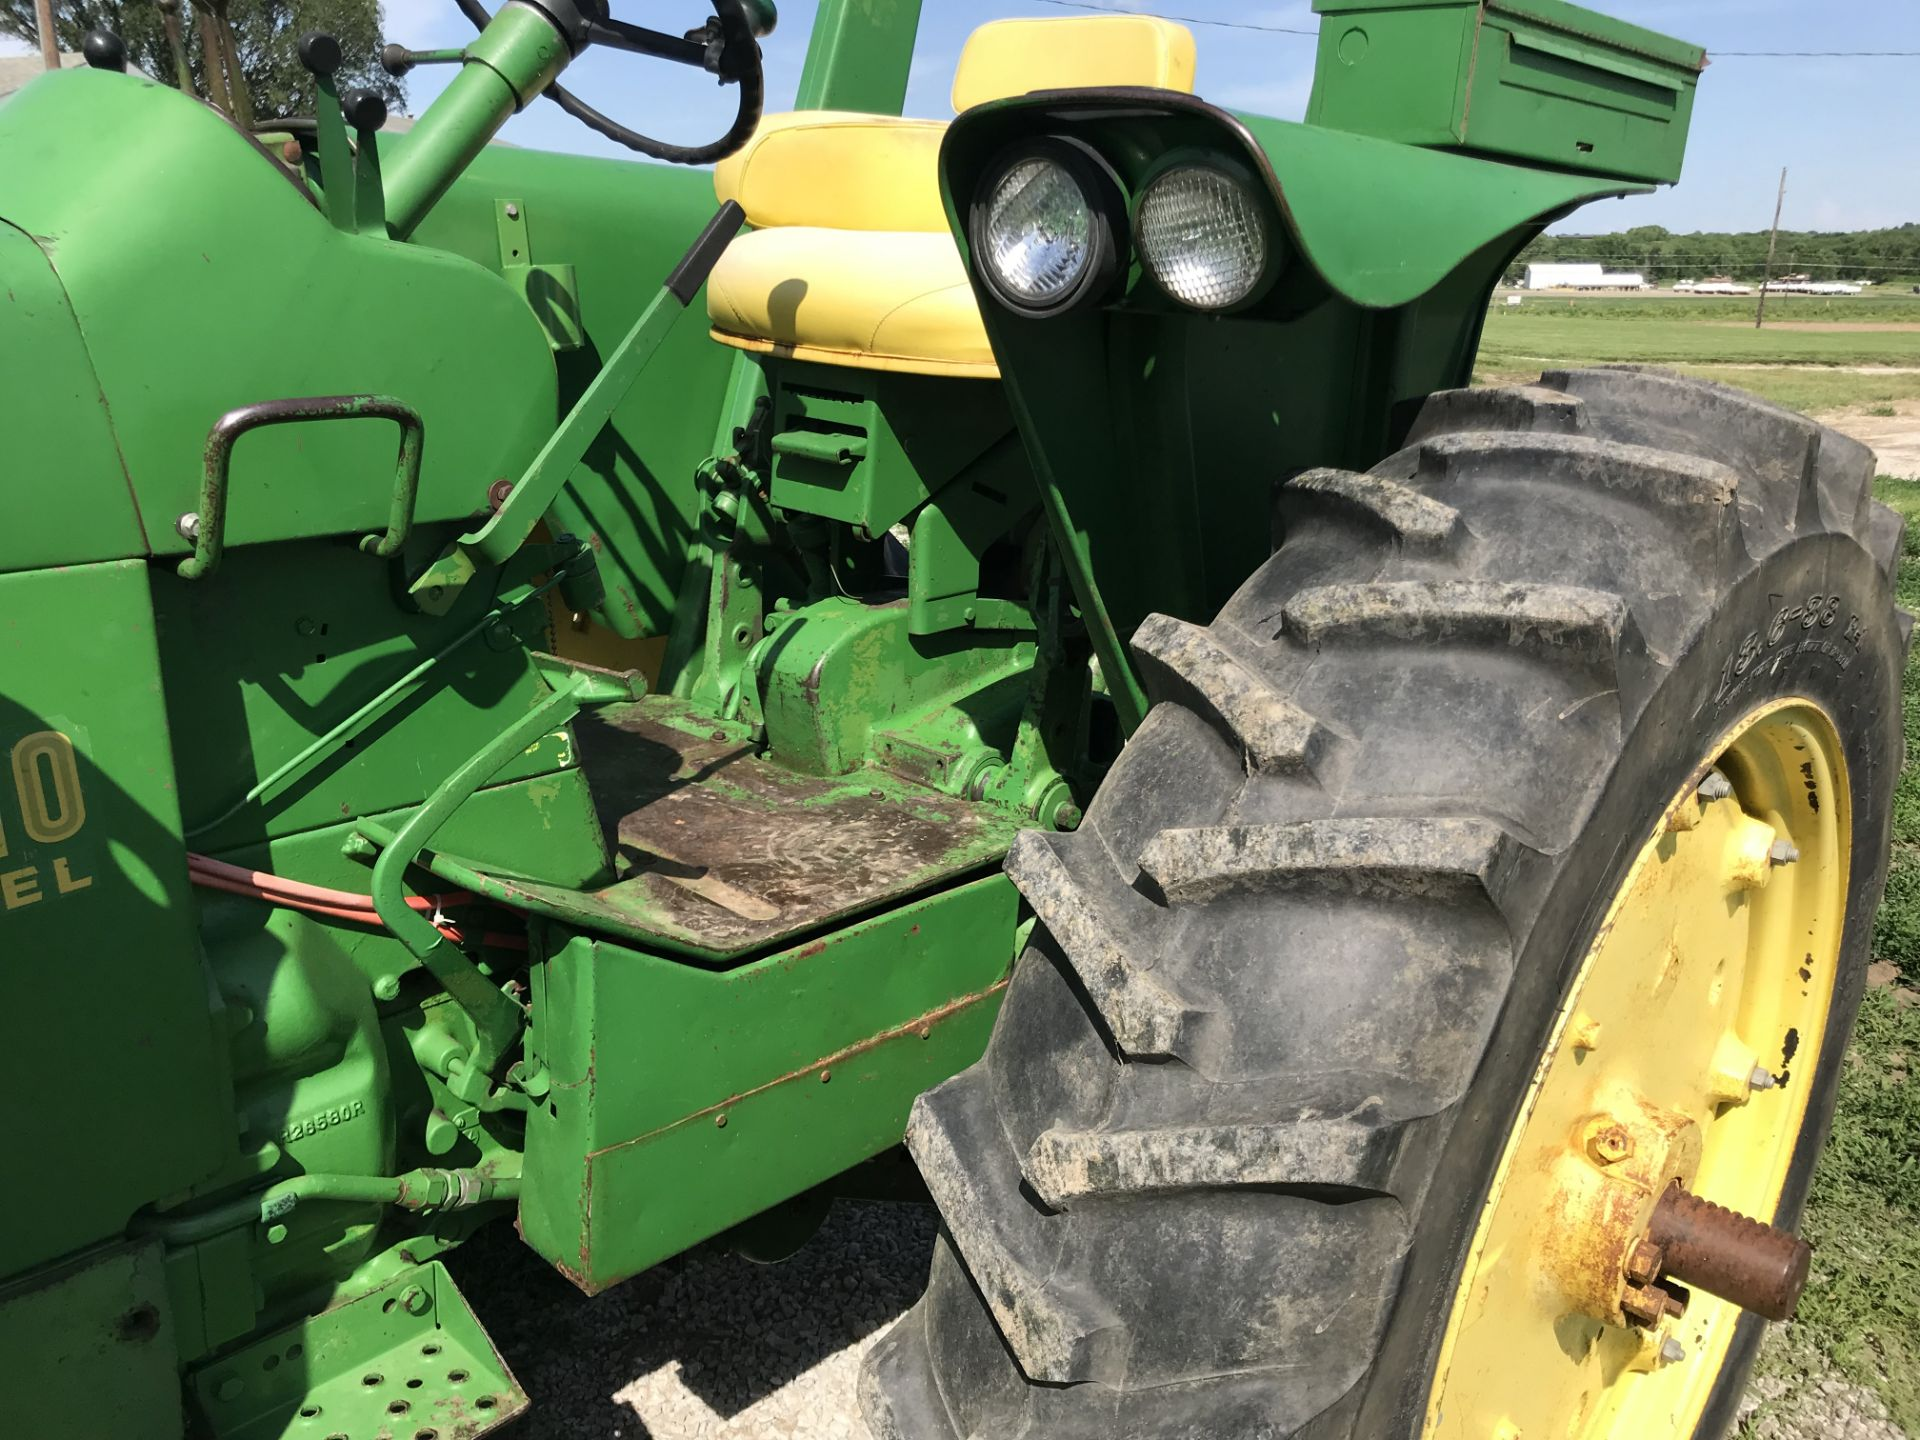 Lot 17 - JD 3010 Diesel S#8945, WF, 1 Remote, ROPS, New 13.6x38 Tach shows 4550hrs, (loader sold separately)